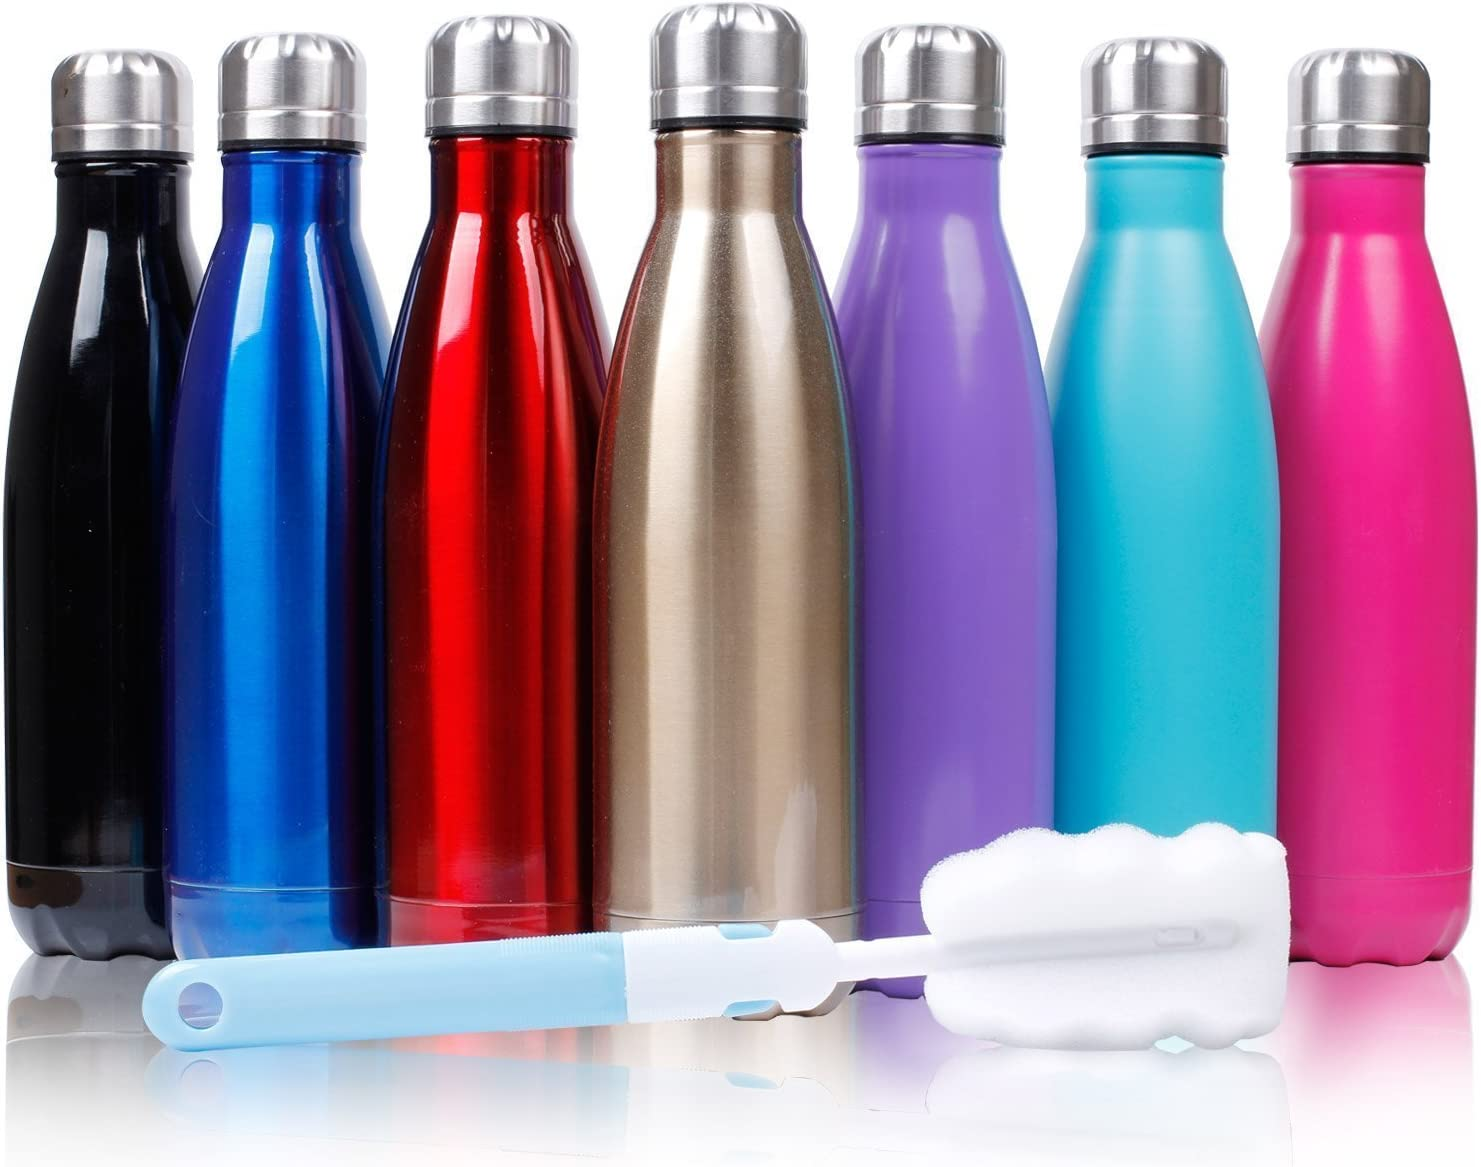 Sfee 17oz Double Wall Vacuum Insulated Stainless Steel Water Bottle